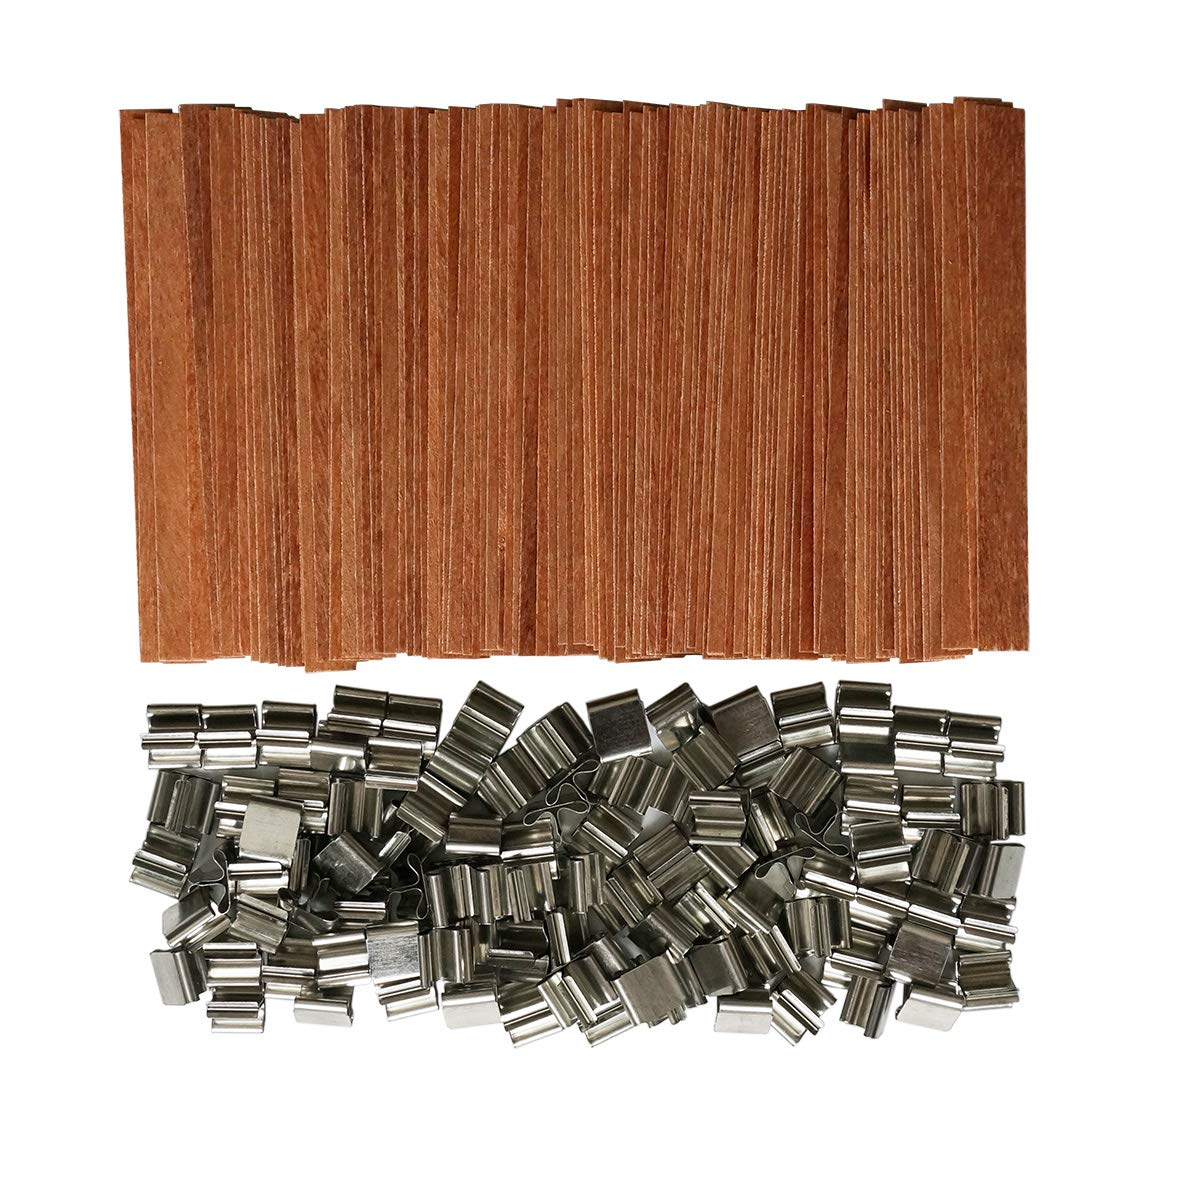 100 Piece 5 inch Wood Candle Wicks Medium Crackle for Candle Making